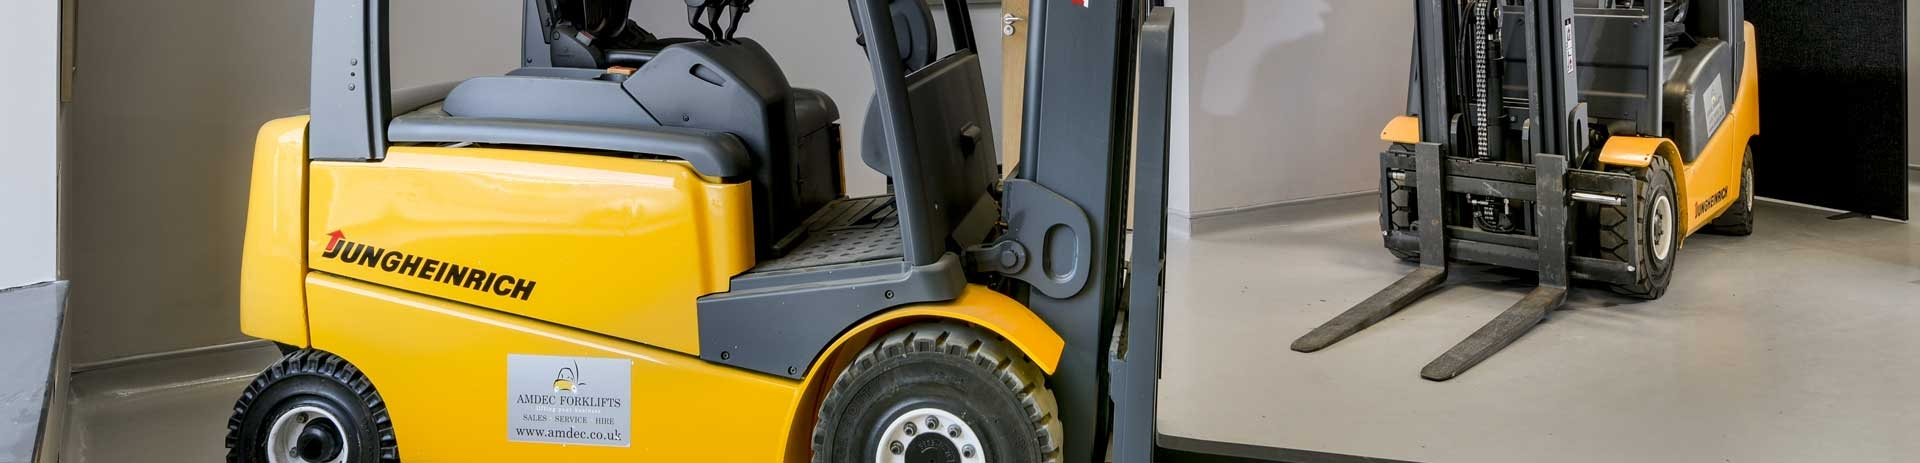 Warning Fork lift Trucks Signs